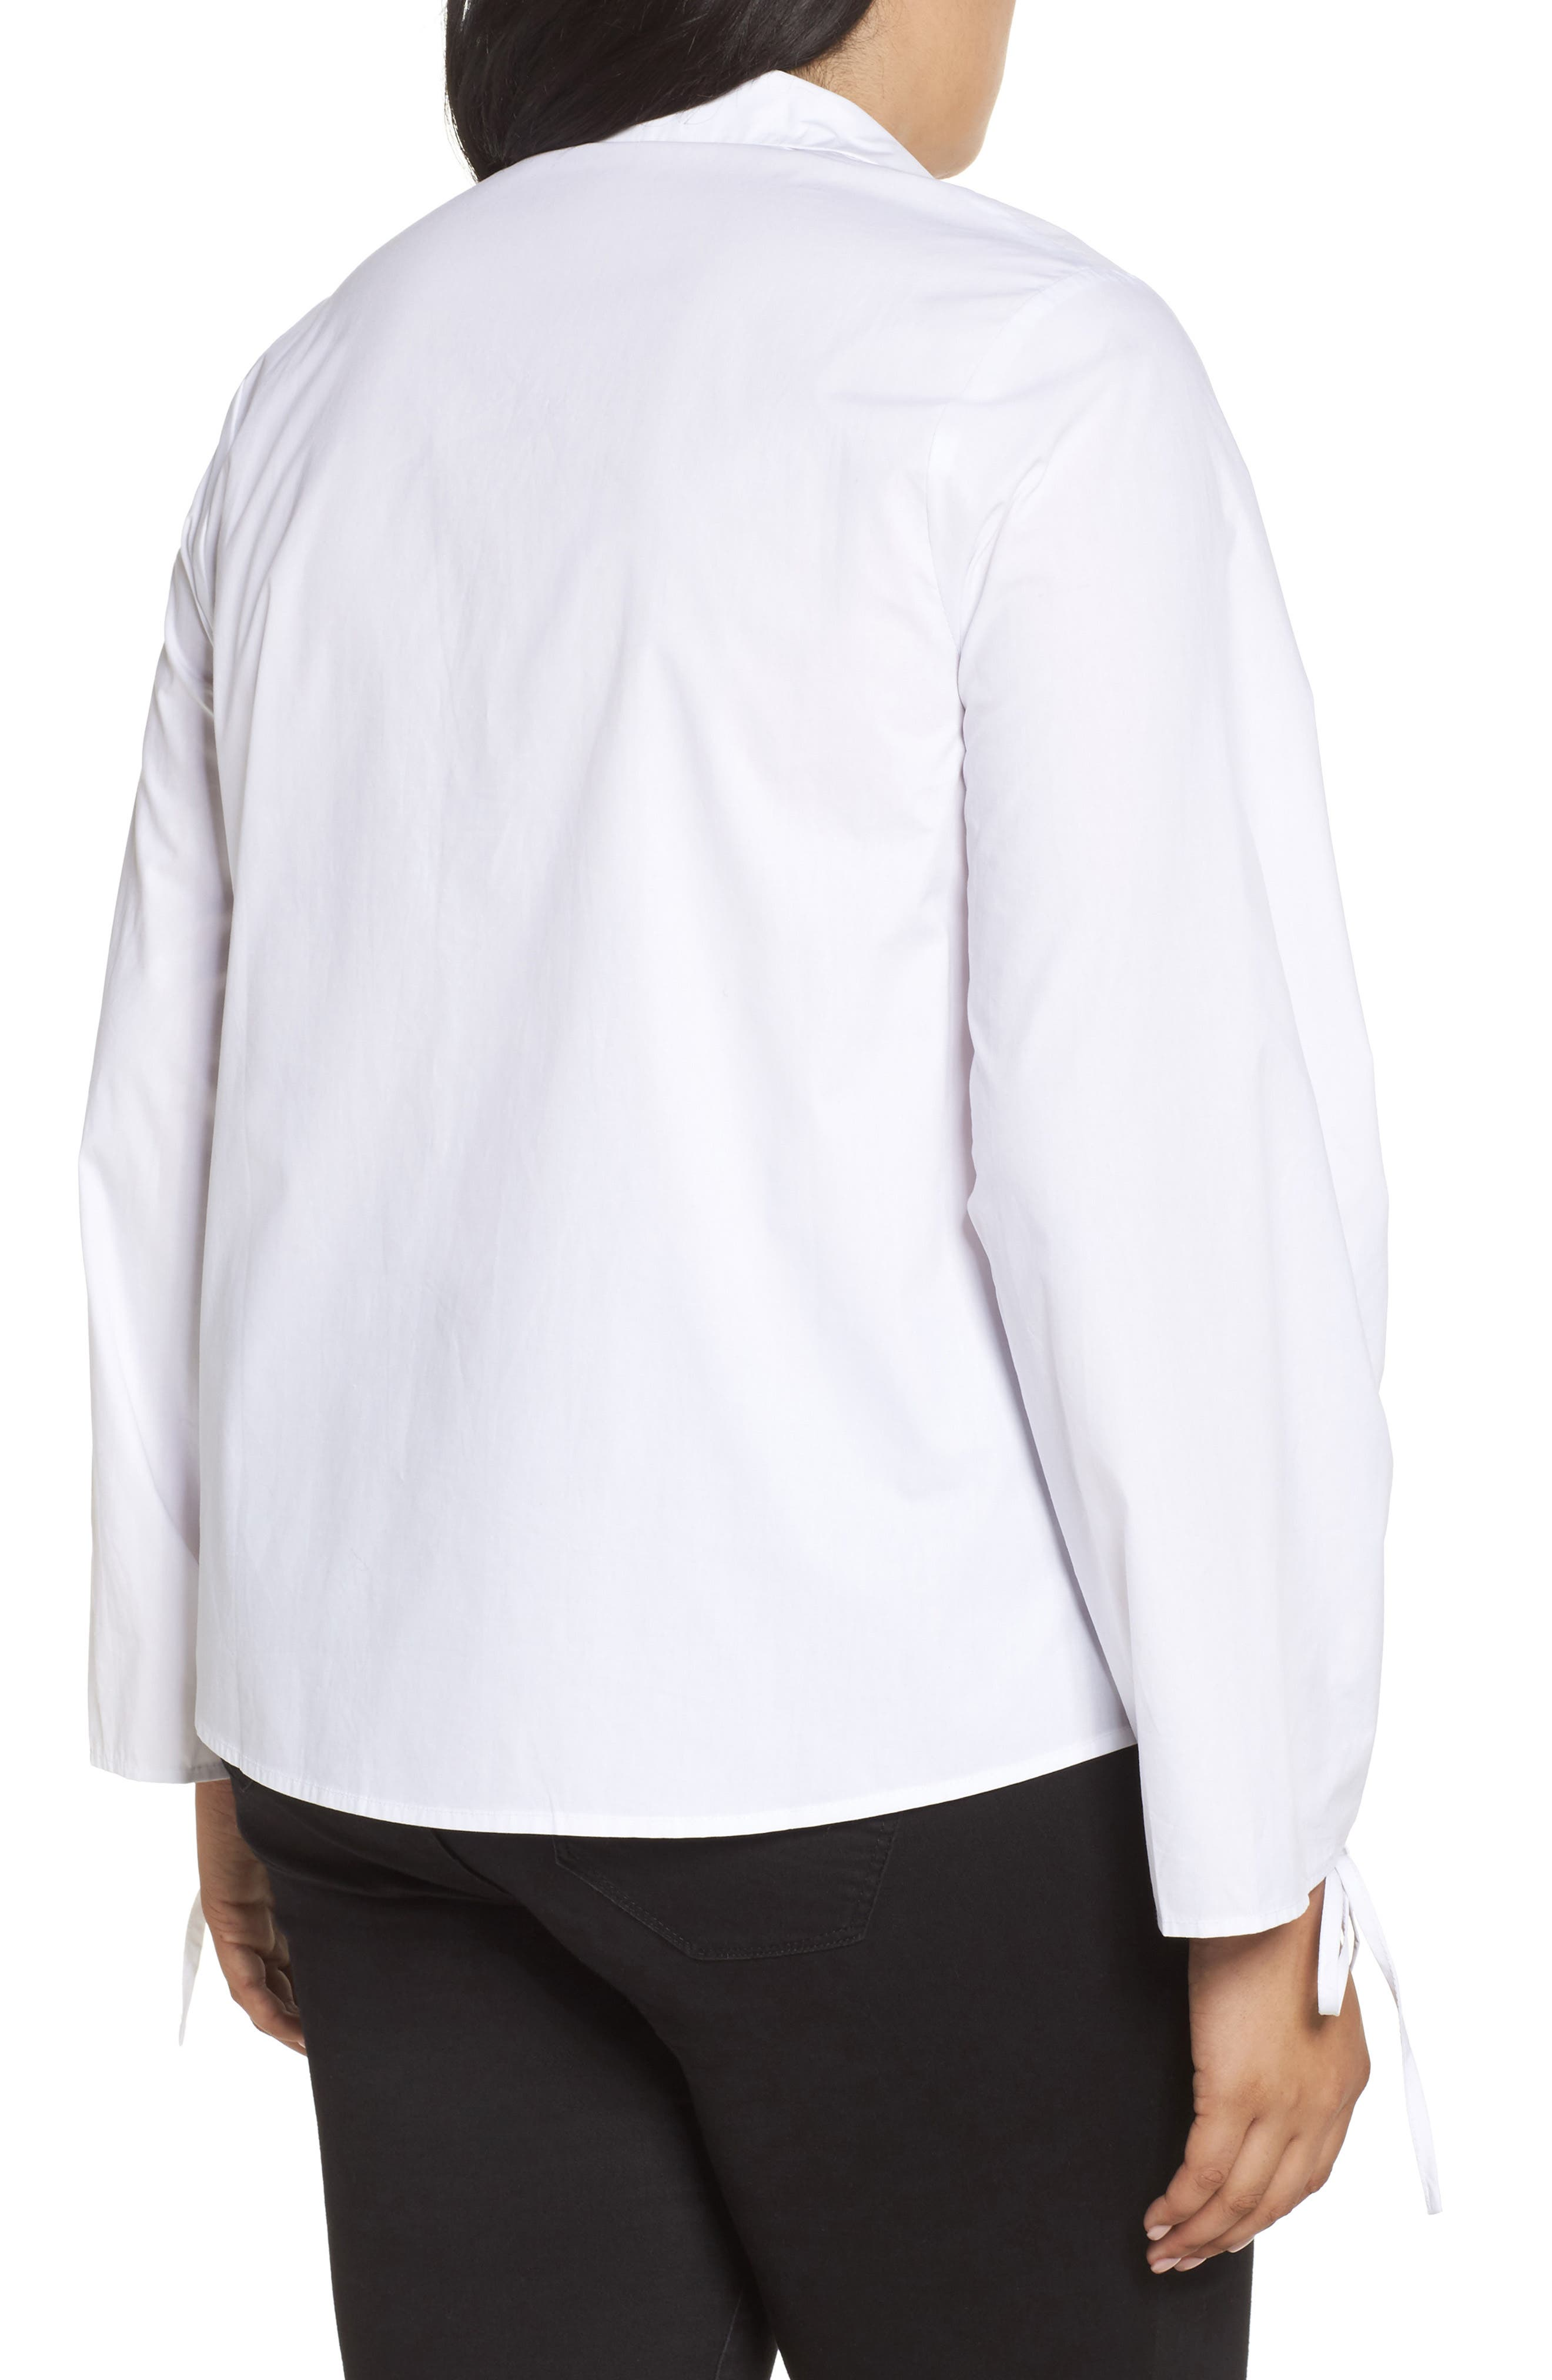 Ruched Sleeve Button-Up Shirt,                             Alternate thumbnail 2, color,                             101